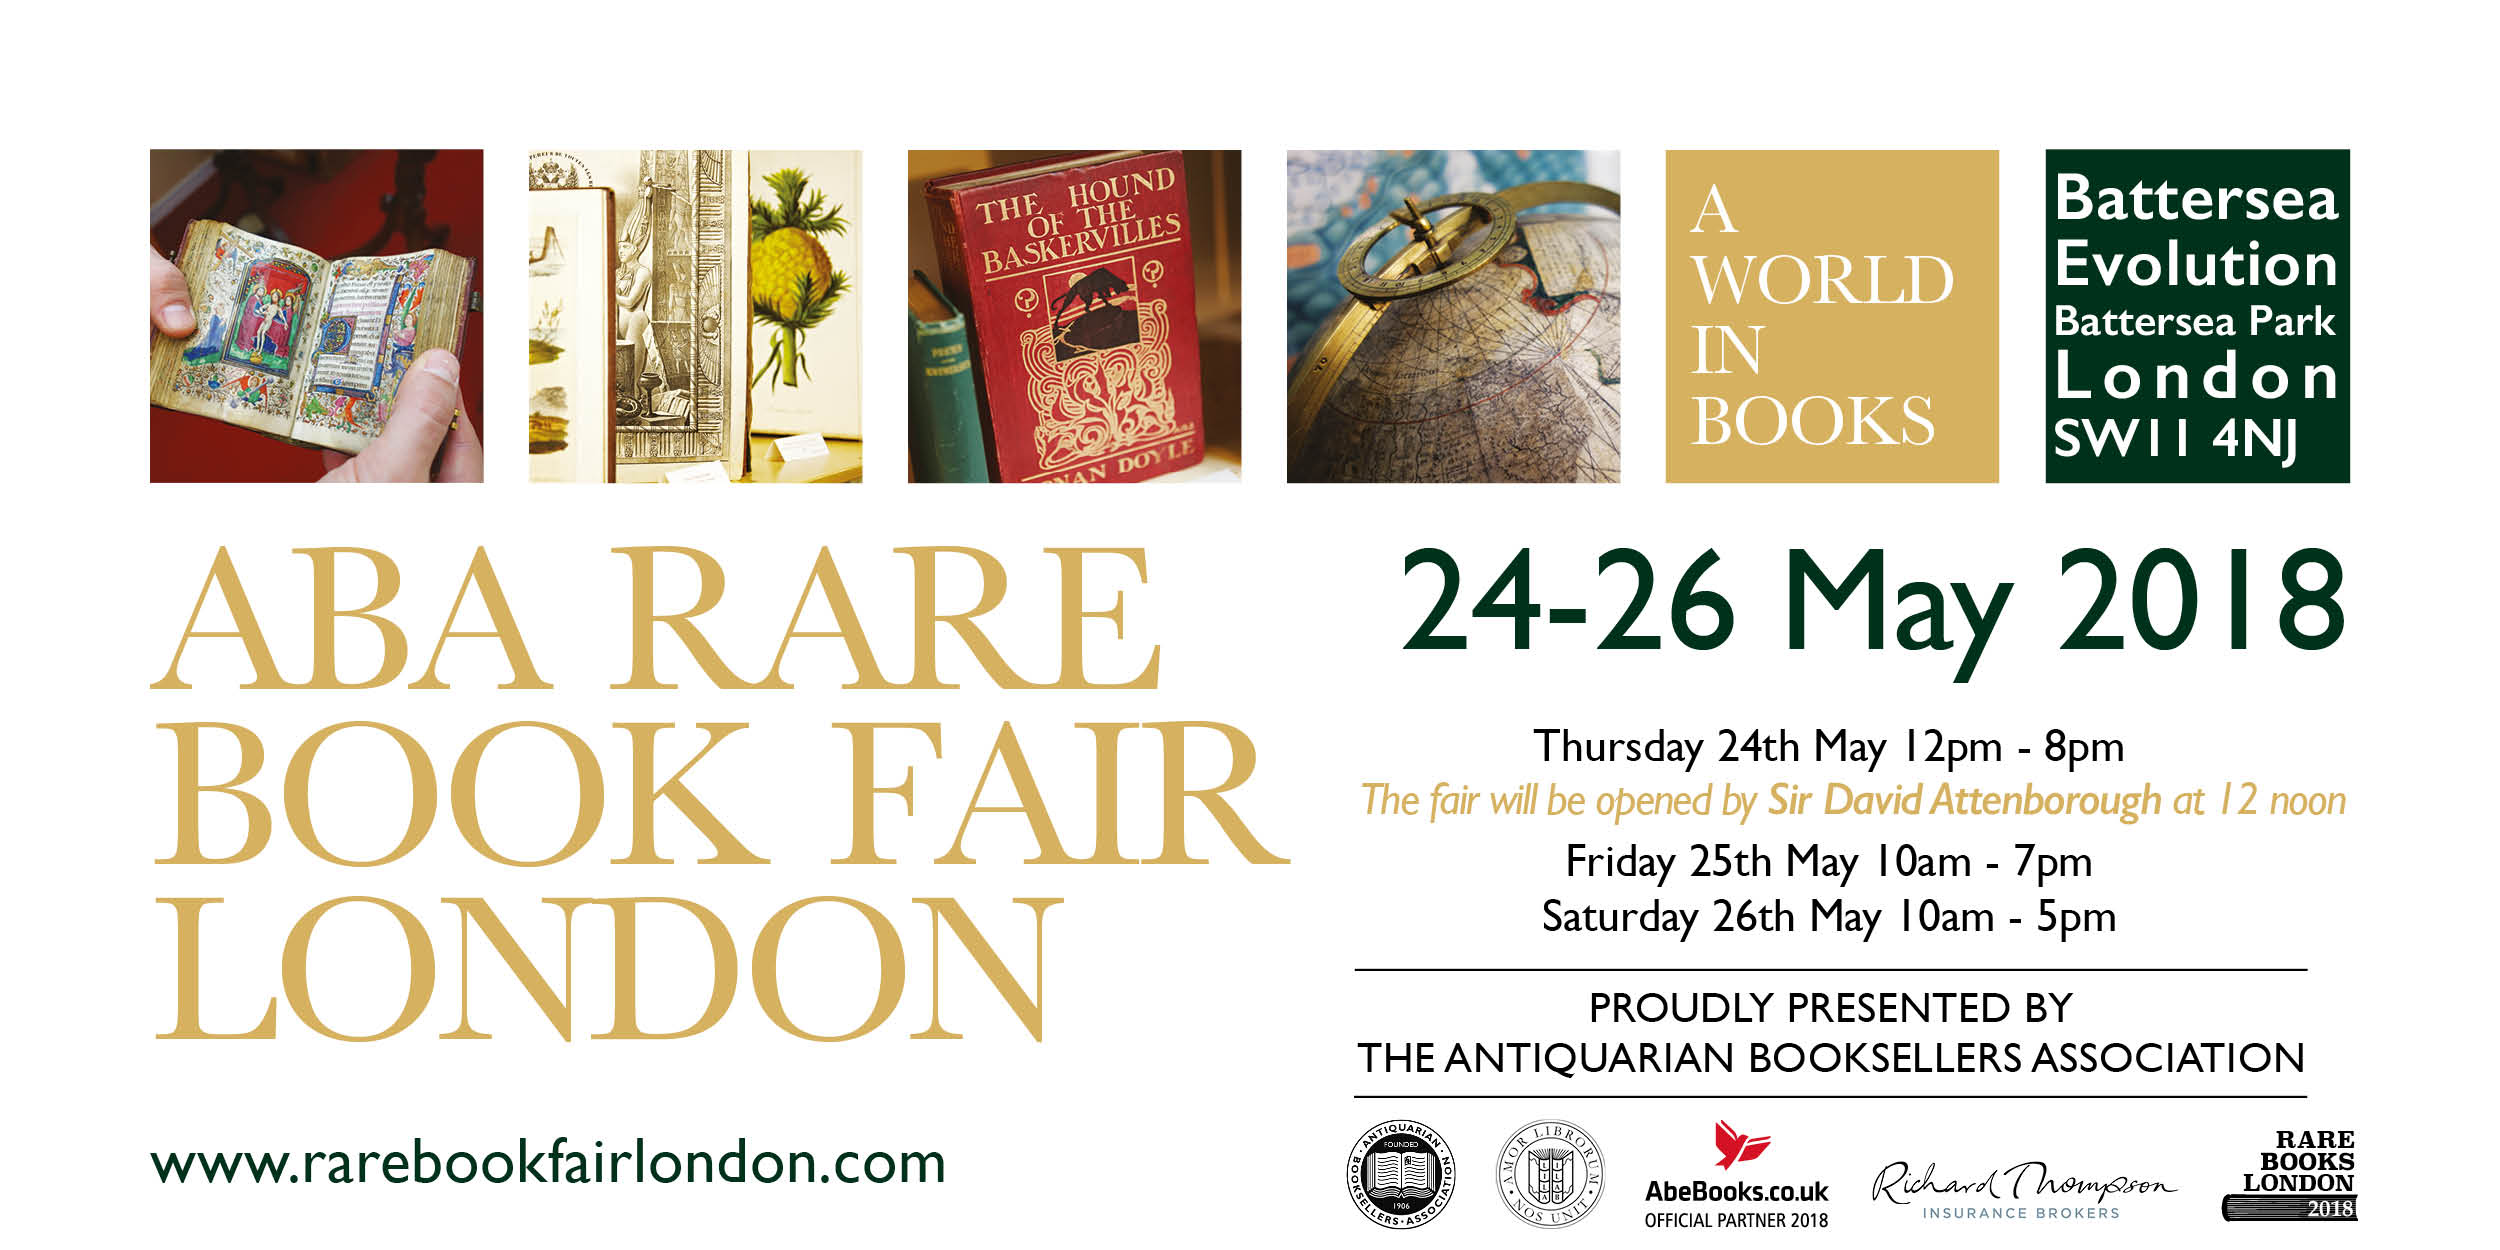 The ABA Rare Book Fair in London